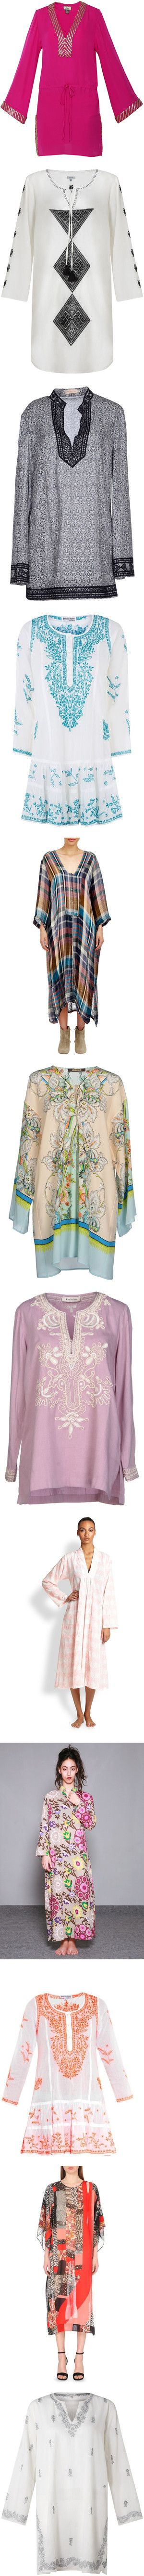 Cover Up: Long-Sleeve Kaftans by polyvore-editorial on Polyvore featuring kaftans, tops, tunics, dresses, swimwear, long sleeve caftan, beach caftan, beaded tunic, beach kaftan and short kaftan